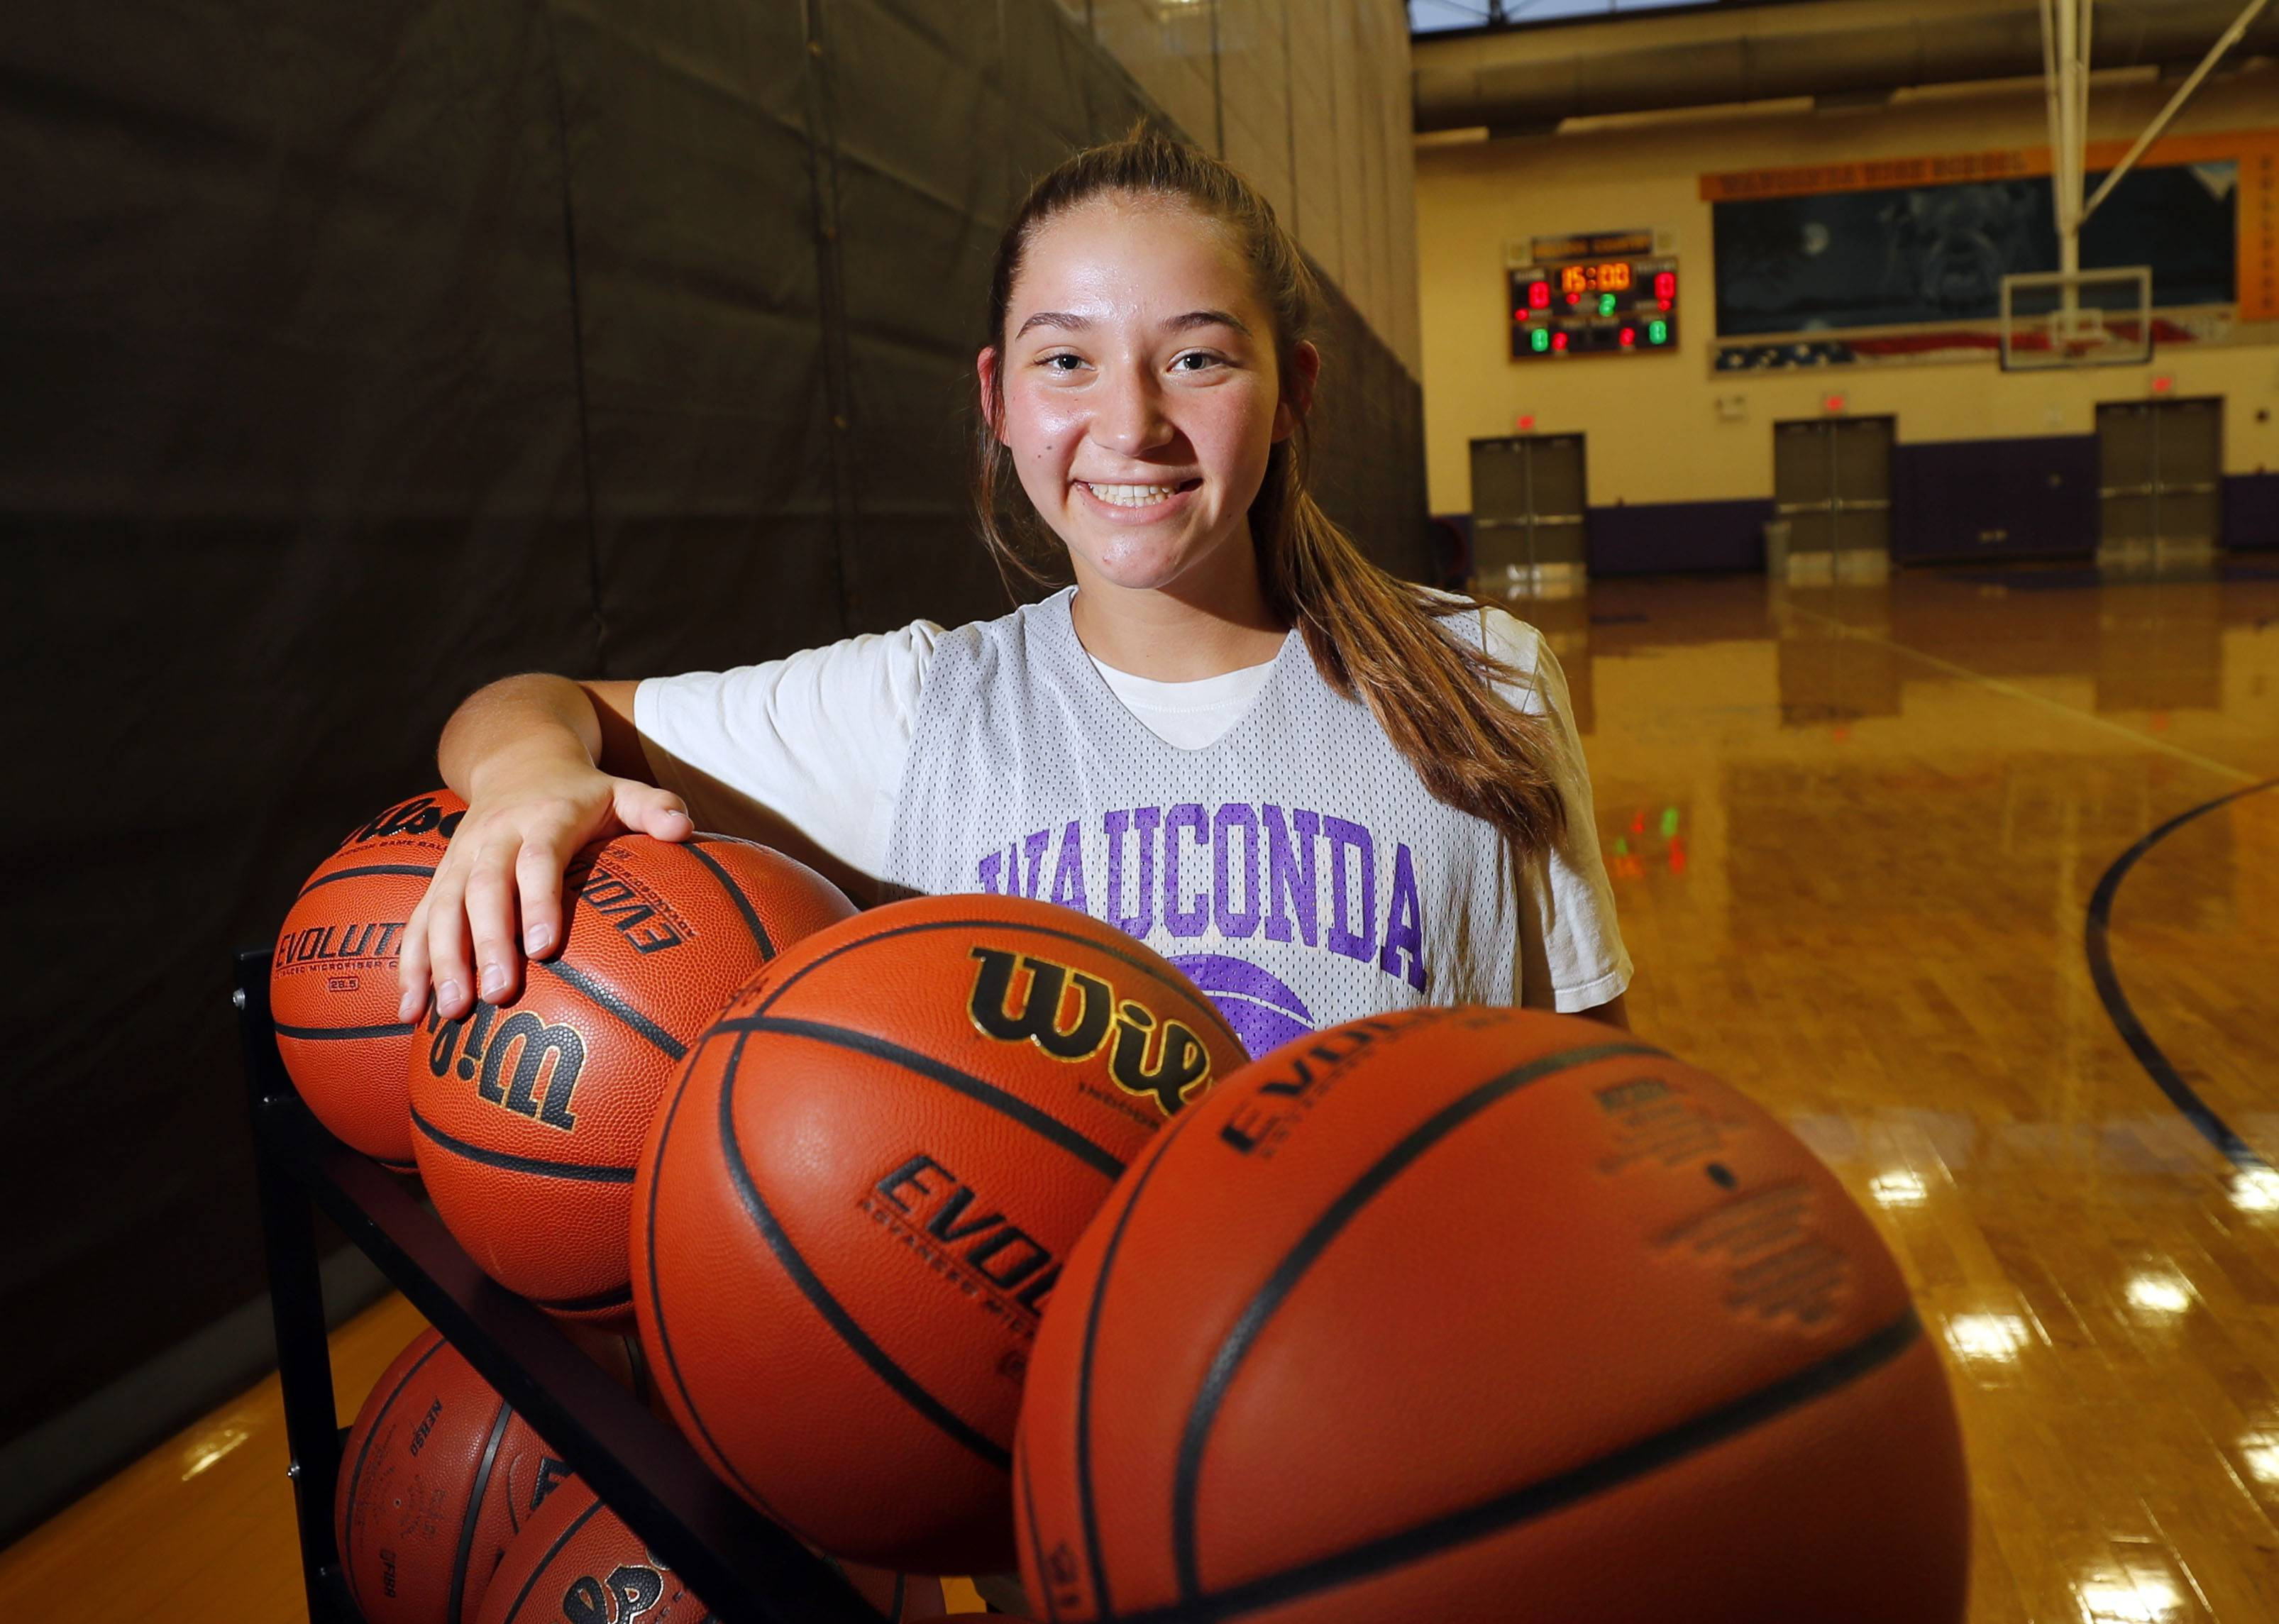 Tylka can wait for sun to set on Wauconda career